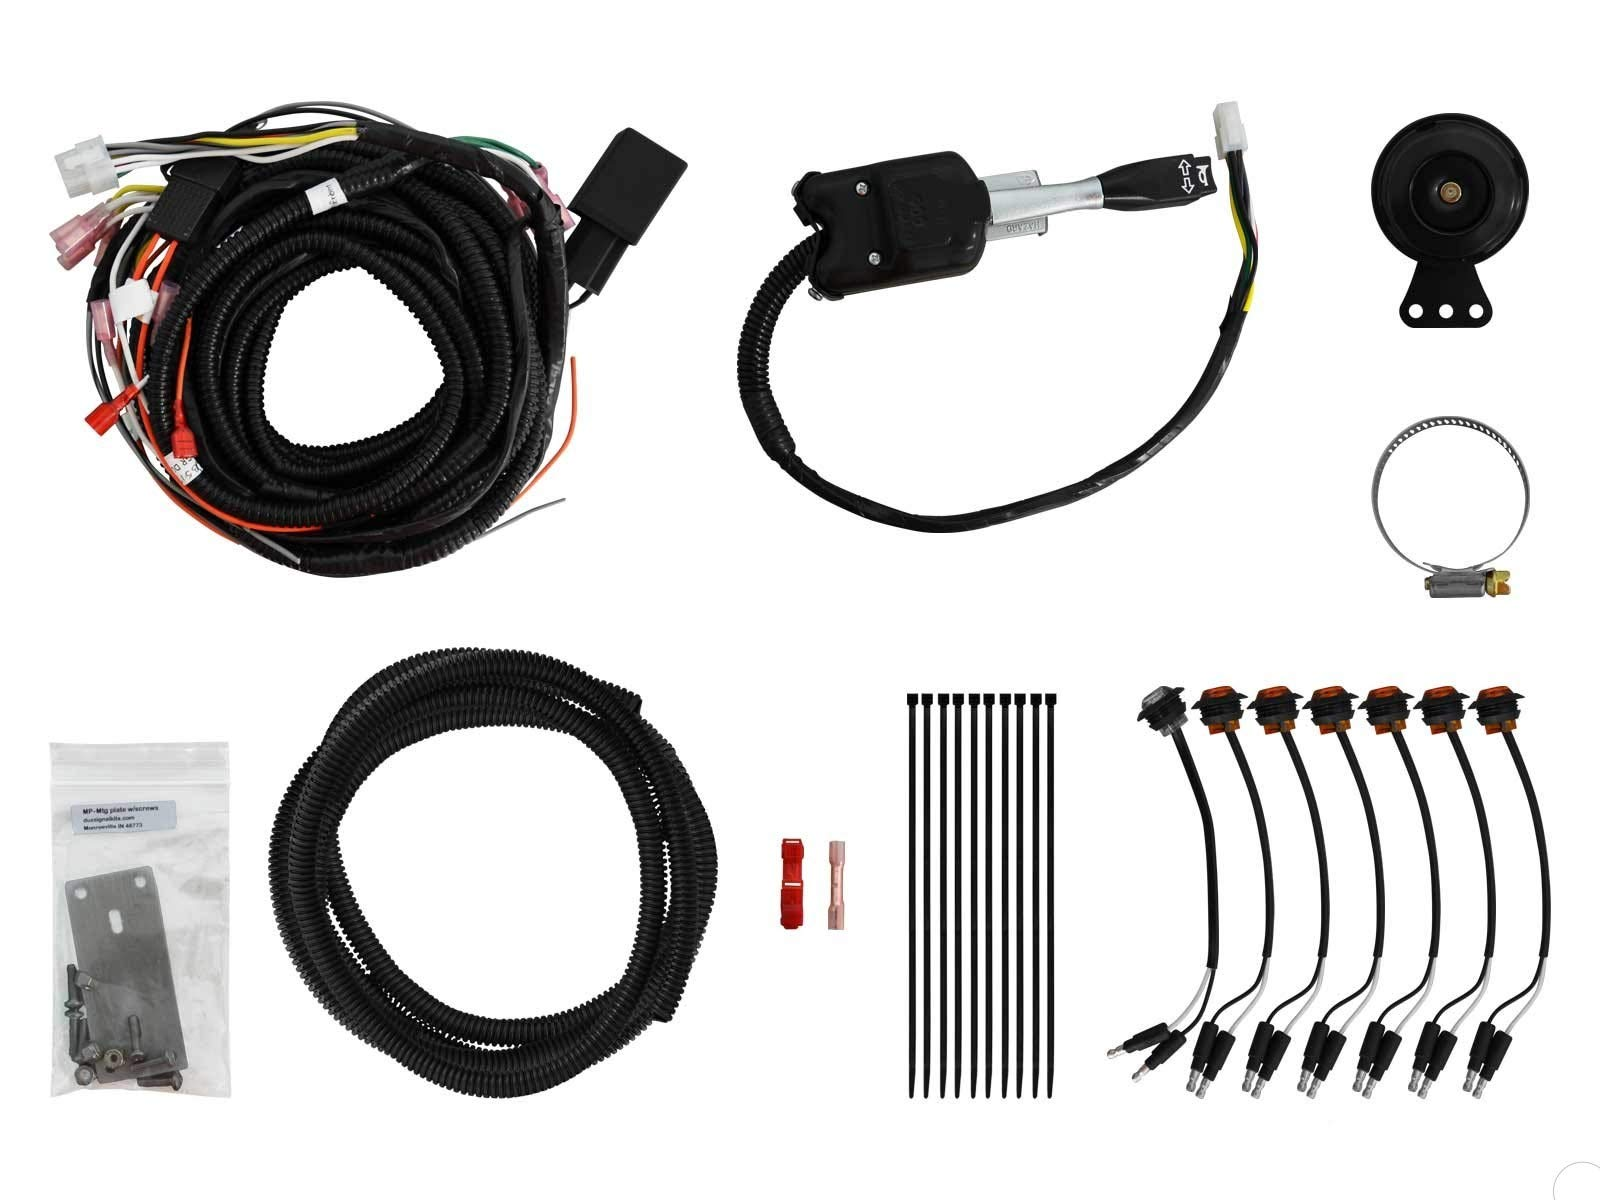 SuperATV Turn Signal Kit for Polaris Ranger XP 900 Crew (2014+) With Steering Column Switch and Attached Horn - Plug and Play For Easy Installation! by SuperATV.com